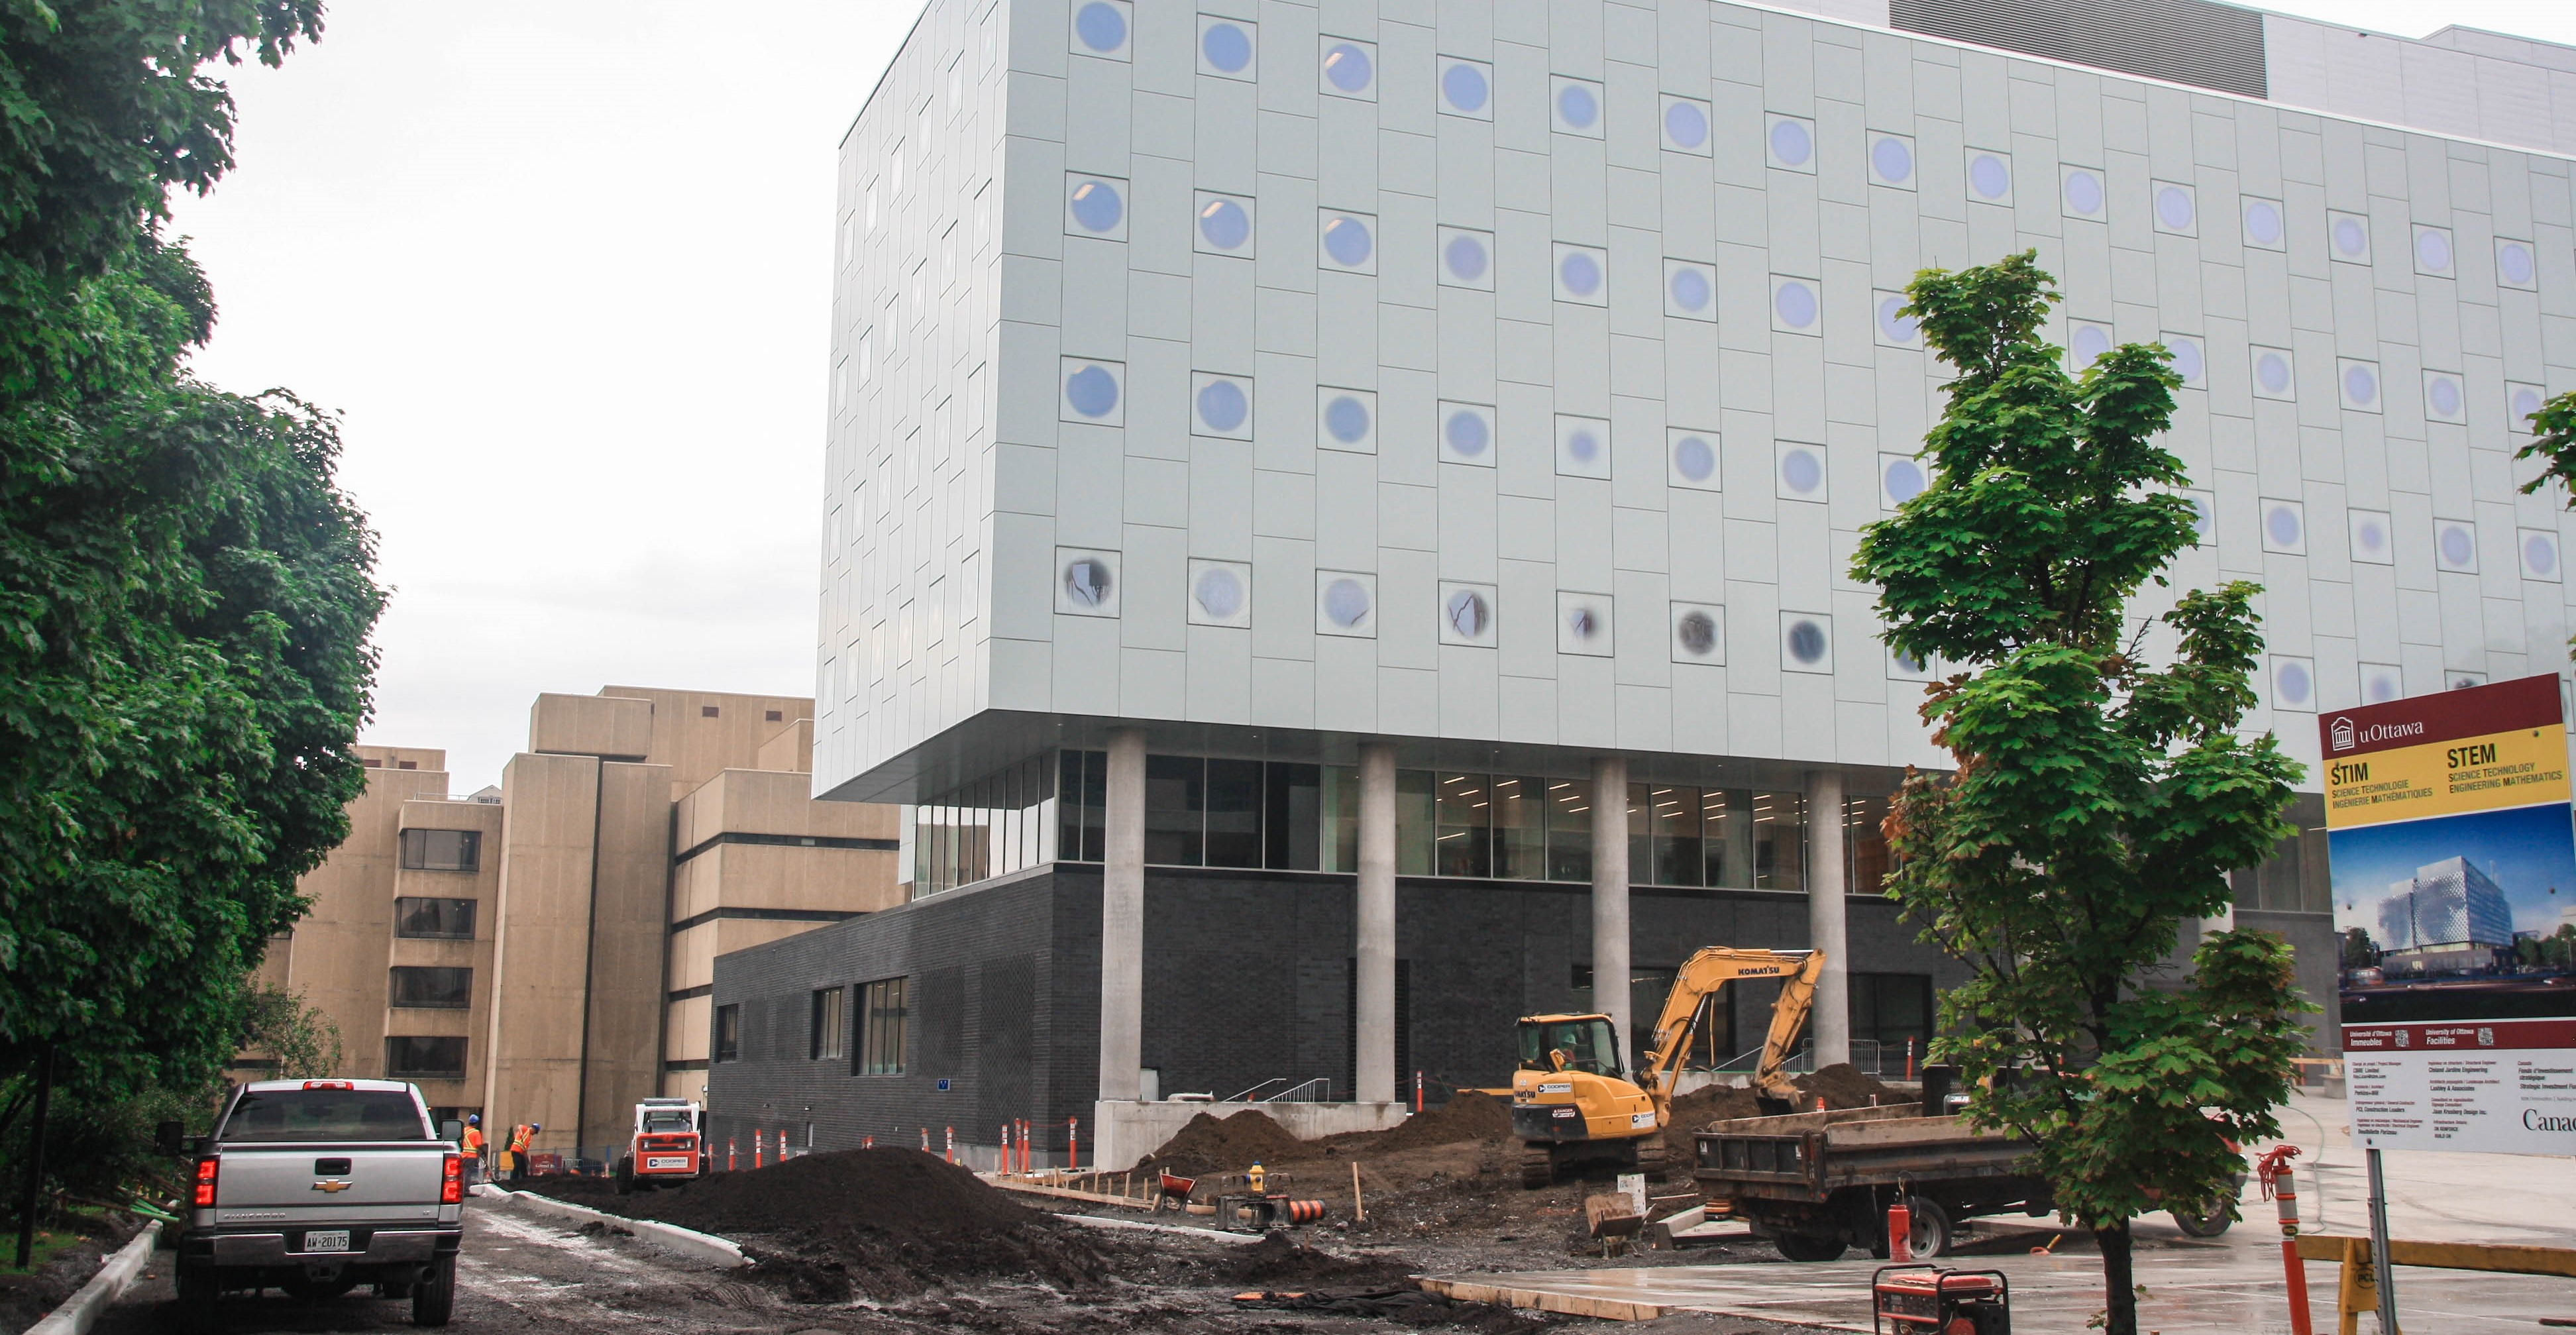 Construction of the uOttawa STEM complex